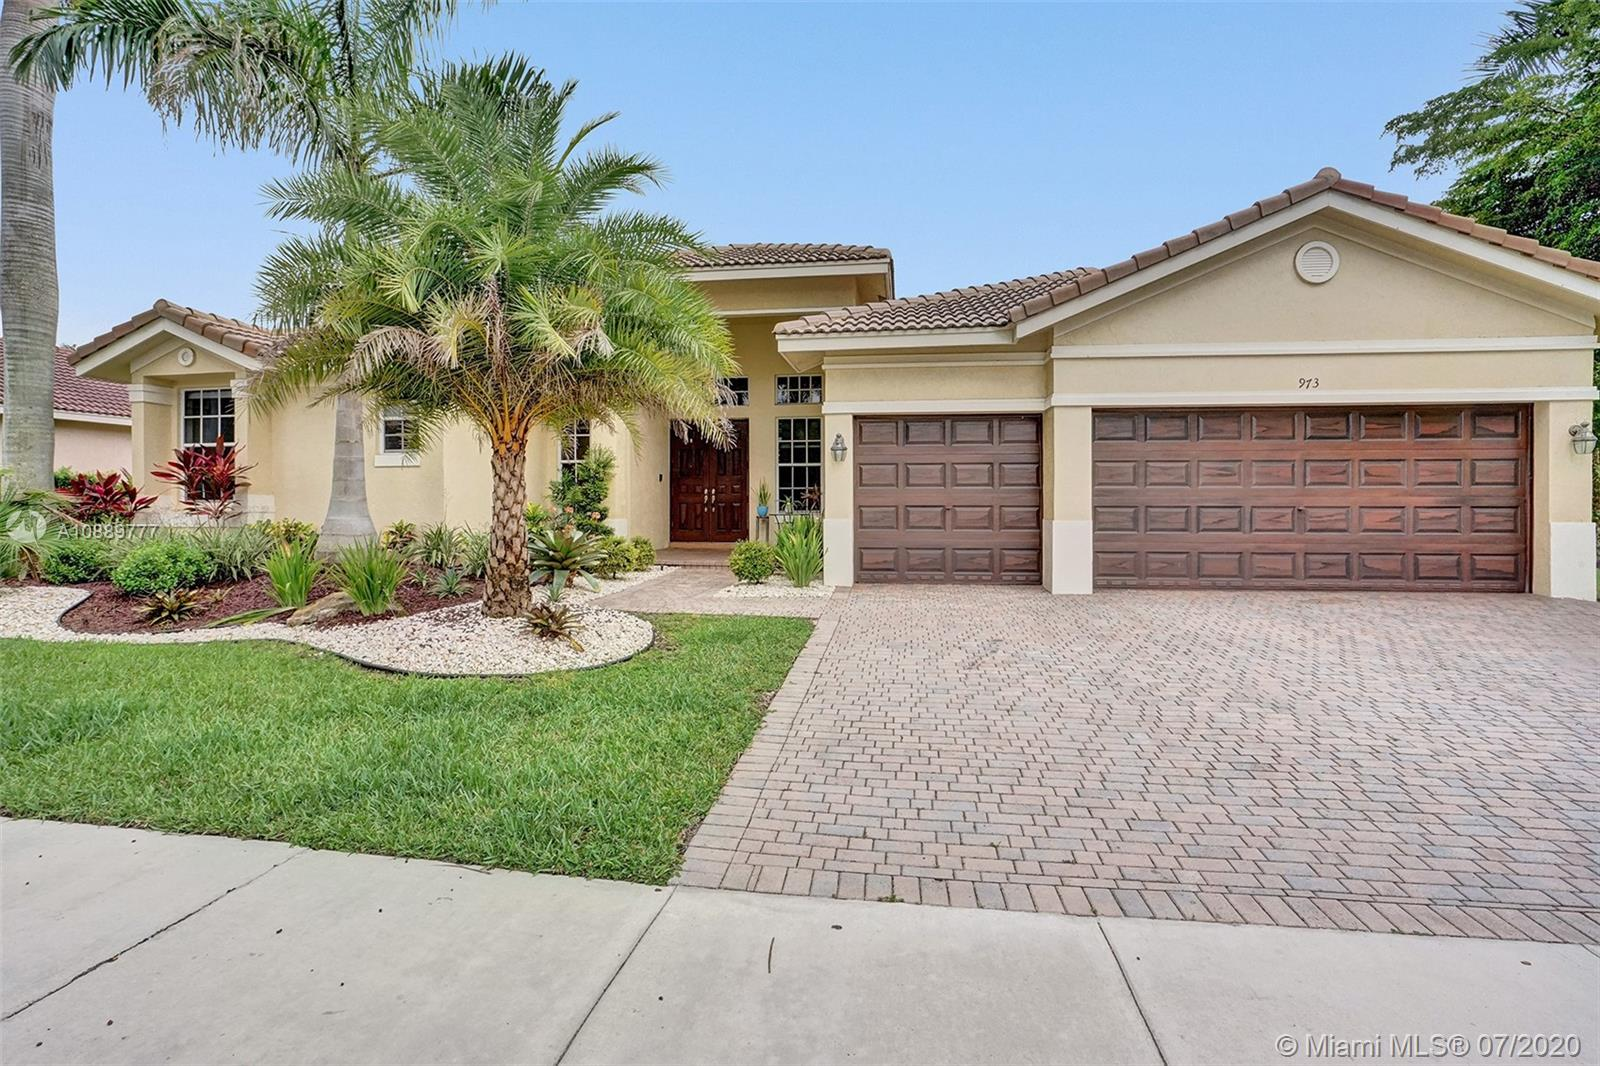 GREAT AND SPACIOUS 5 BEDROOMS, 3 BATHROOMS AND A 3 CAR GARAGE ONE STORY BRYANT MODEL IN DESIRABLE COMMUNITY OF WATERSIDE-THE COVE IN SAVANNA WESTON. THIS HOME HAS PLENTY OF SPACE, VERY BRIGHT FLOOR PLAN WITH A COVERED BACK PATIO AND ROOM FOR A SWIMMING POOL. GREAT SCHOOLS. DON'T MISS THIS GREAT OPPORTUNITY!